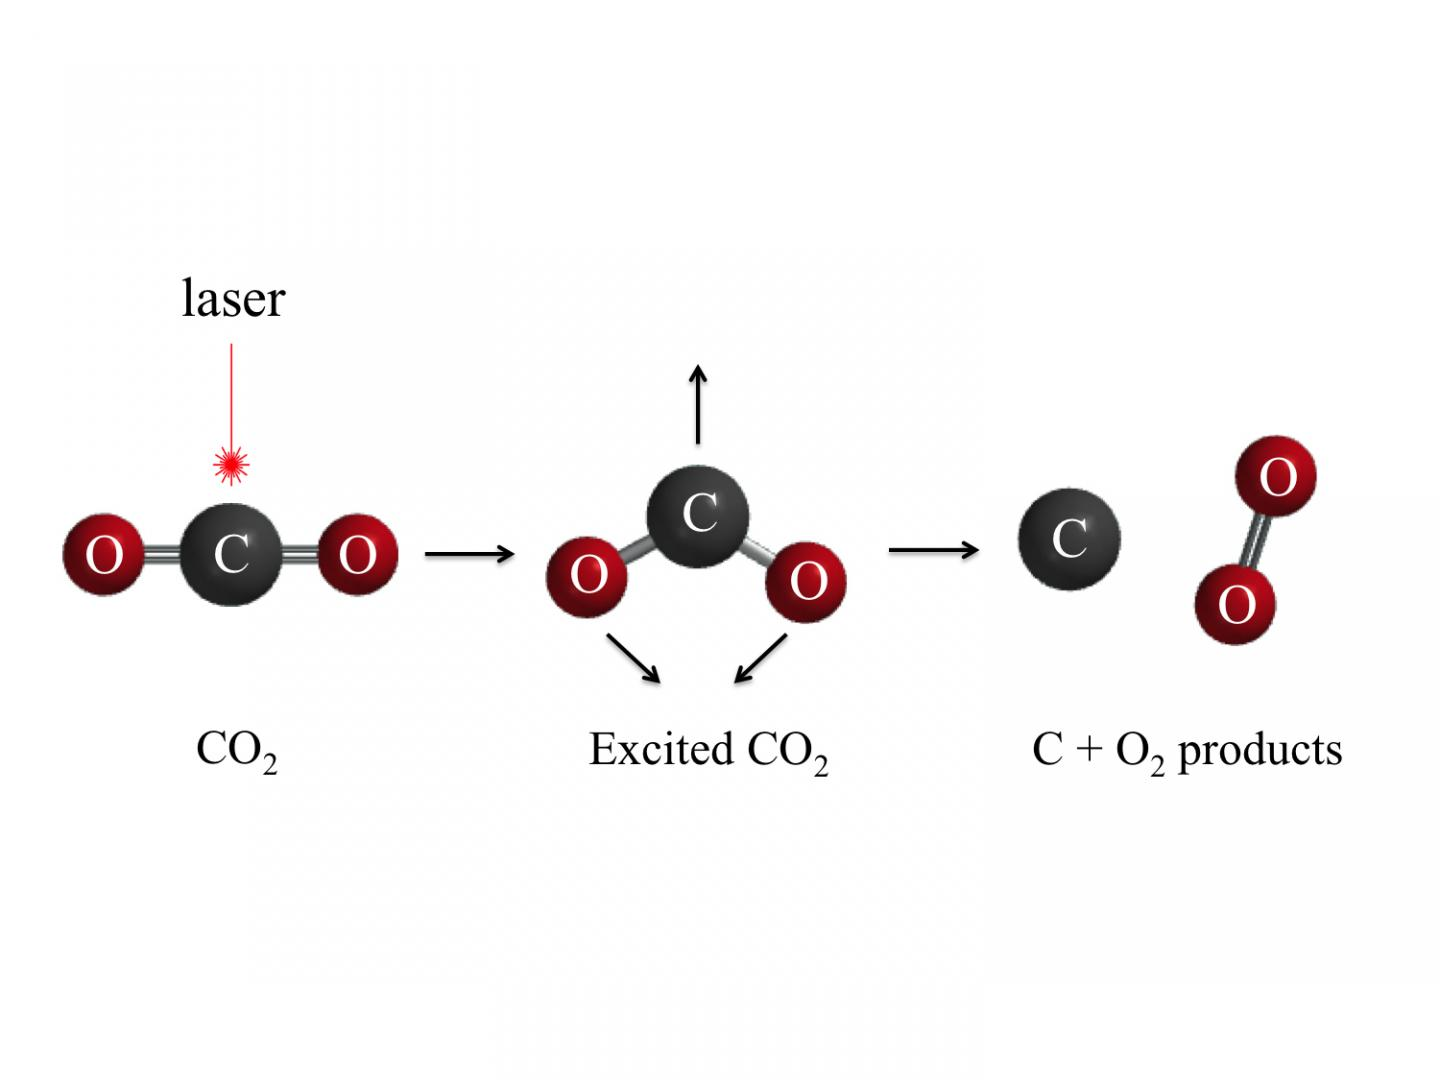 Making Oxygen from Carbon Dioxide